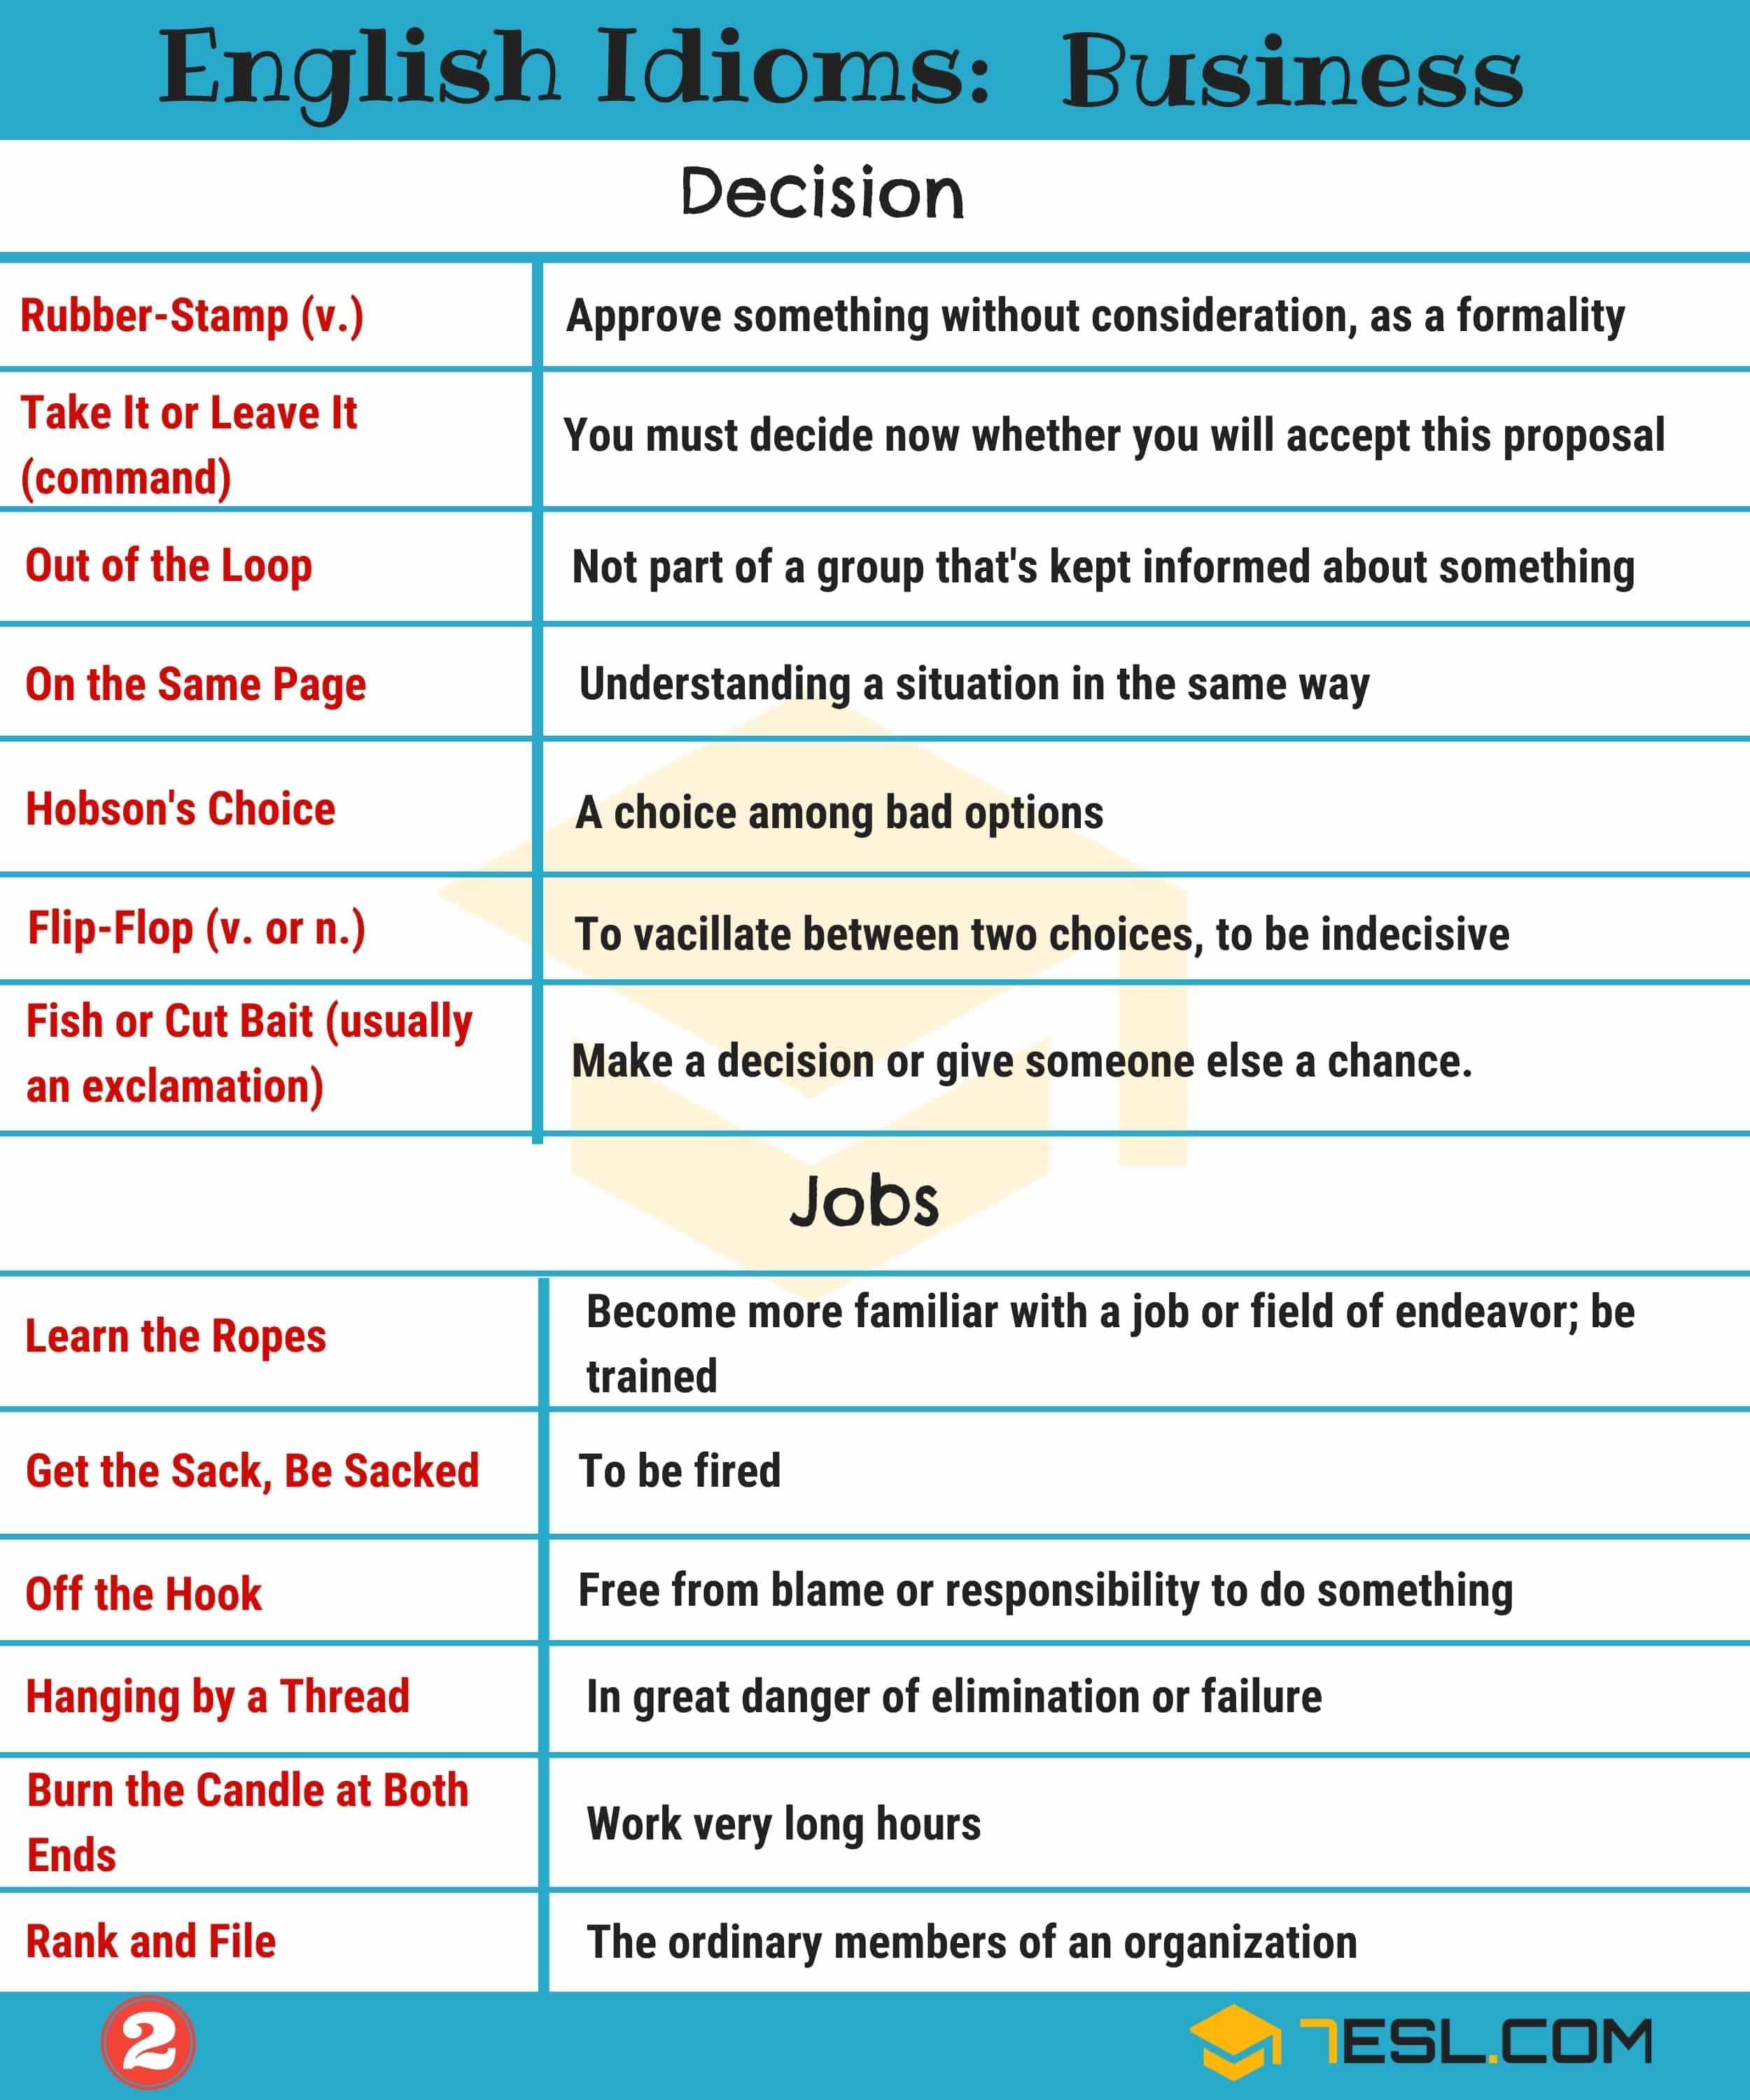 Business Idioms with Meaning | Image 2